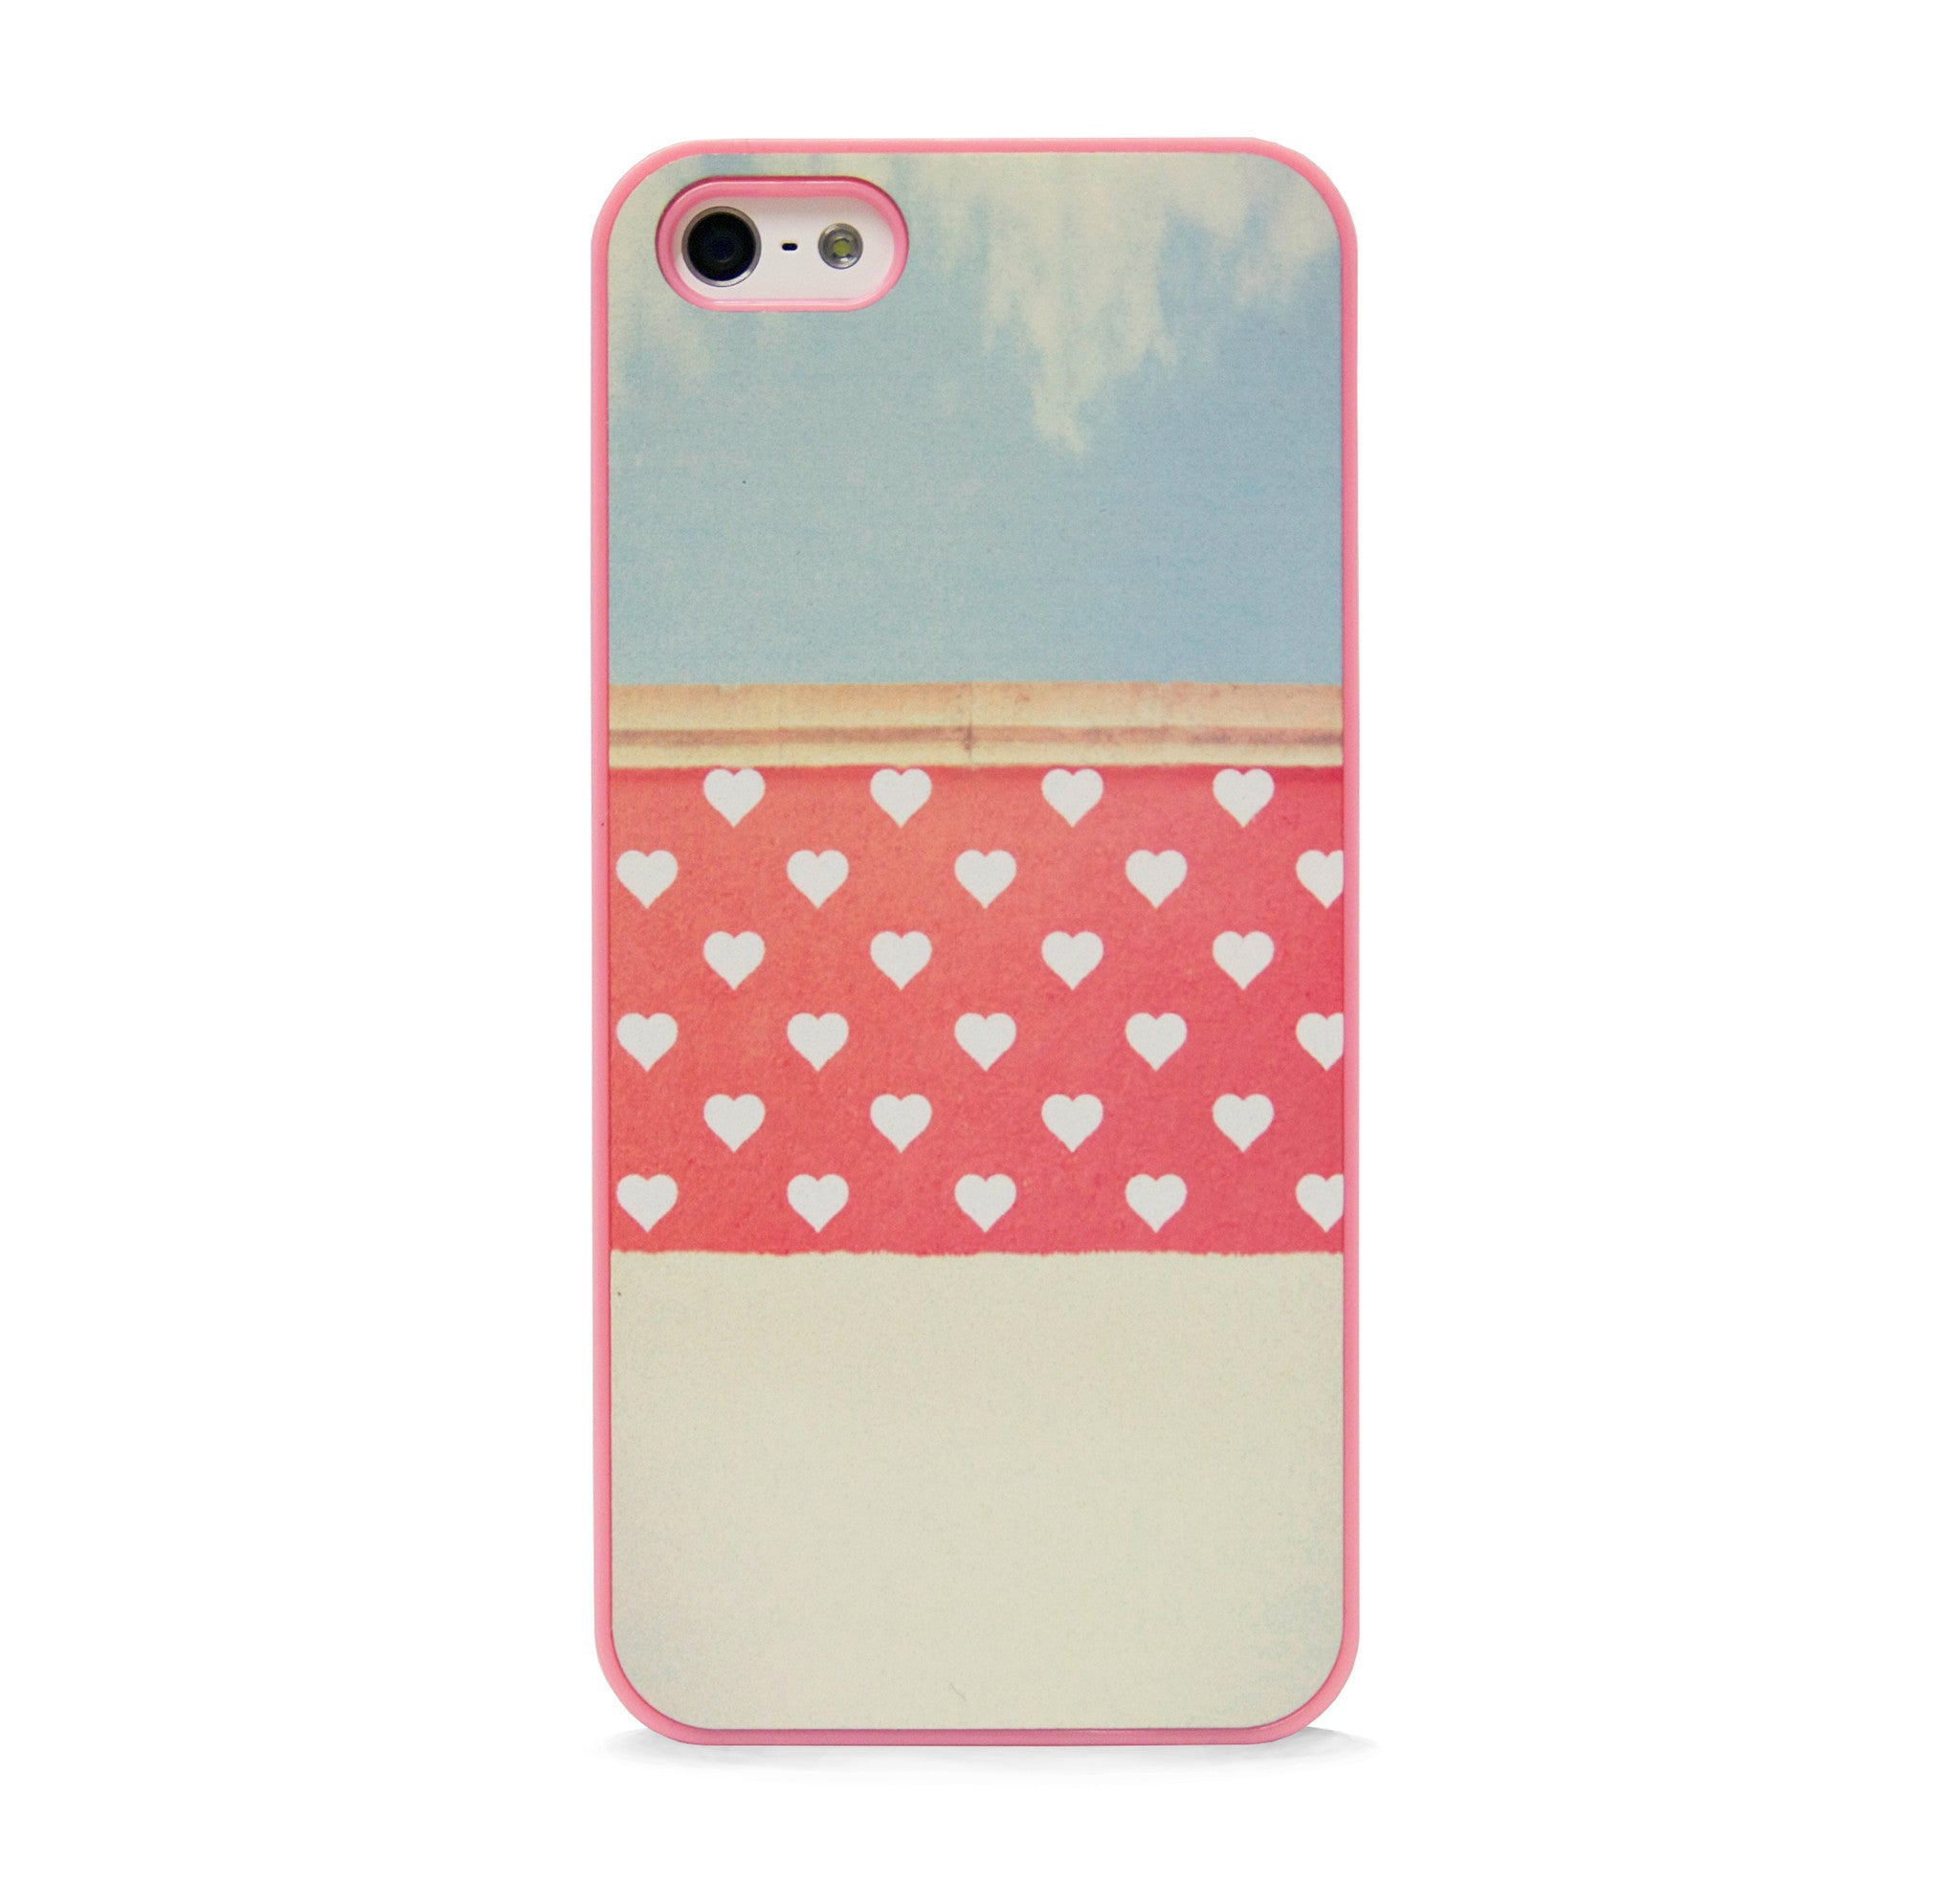 POLKA HEART ORANGE FOR IPHONE 5/5S